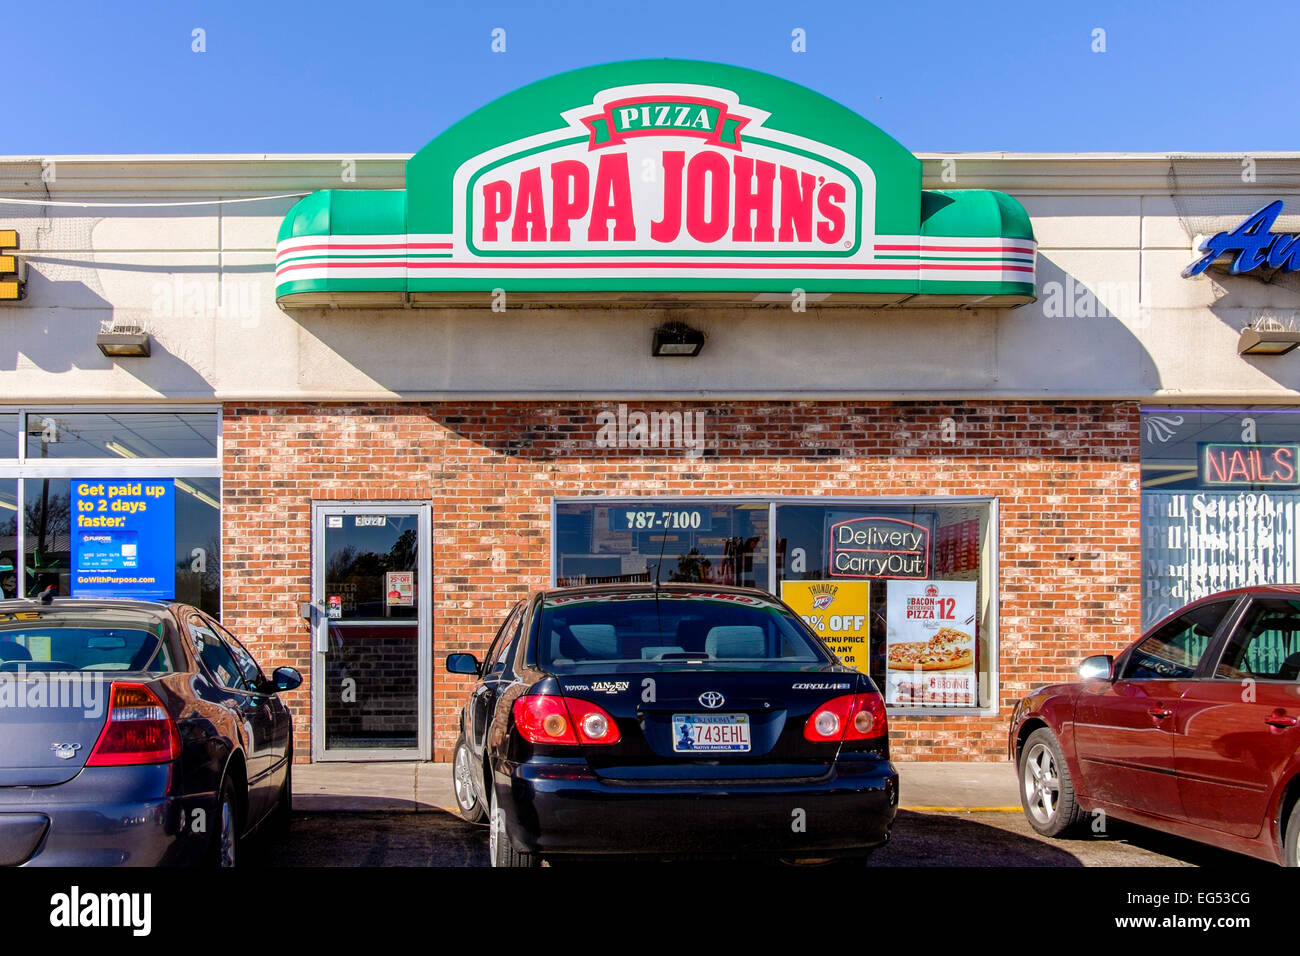 pizza parlor stock photos pizza parlor stock images alamy papa john s pizza in oklahoma city oklahoma usa a take and bake at